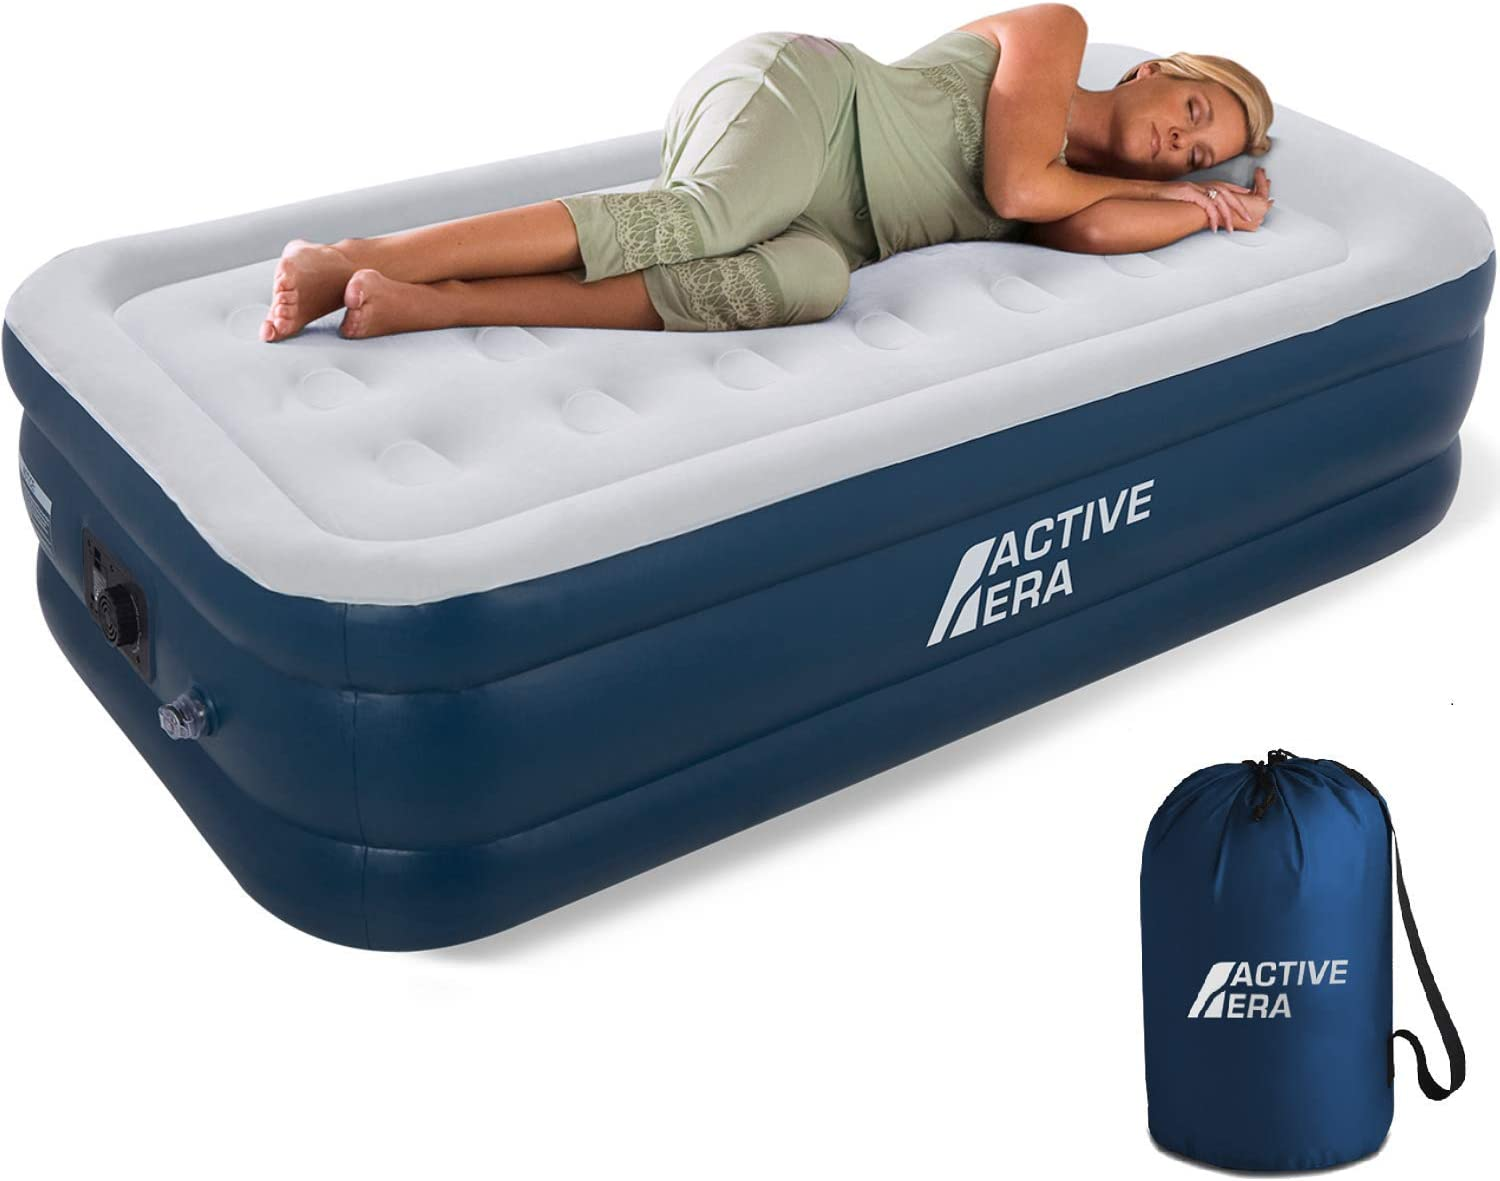 "Active Era Premium Twin Air Mattress (Single) with Built-in Pump and Raised Pillow - Elevated Inflatable Airbed 75"" x 39"" x 18"" - Puncture Resistant Airbed with Waterproof Flocked Top : Sports & Outdoors"